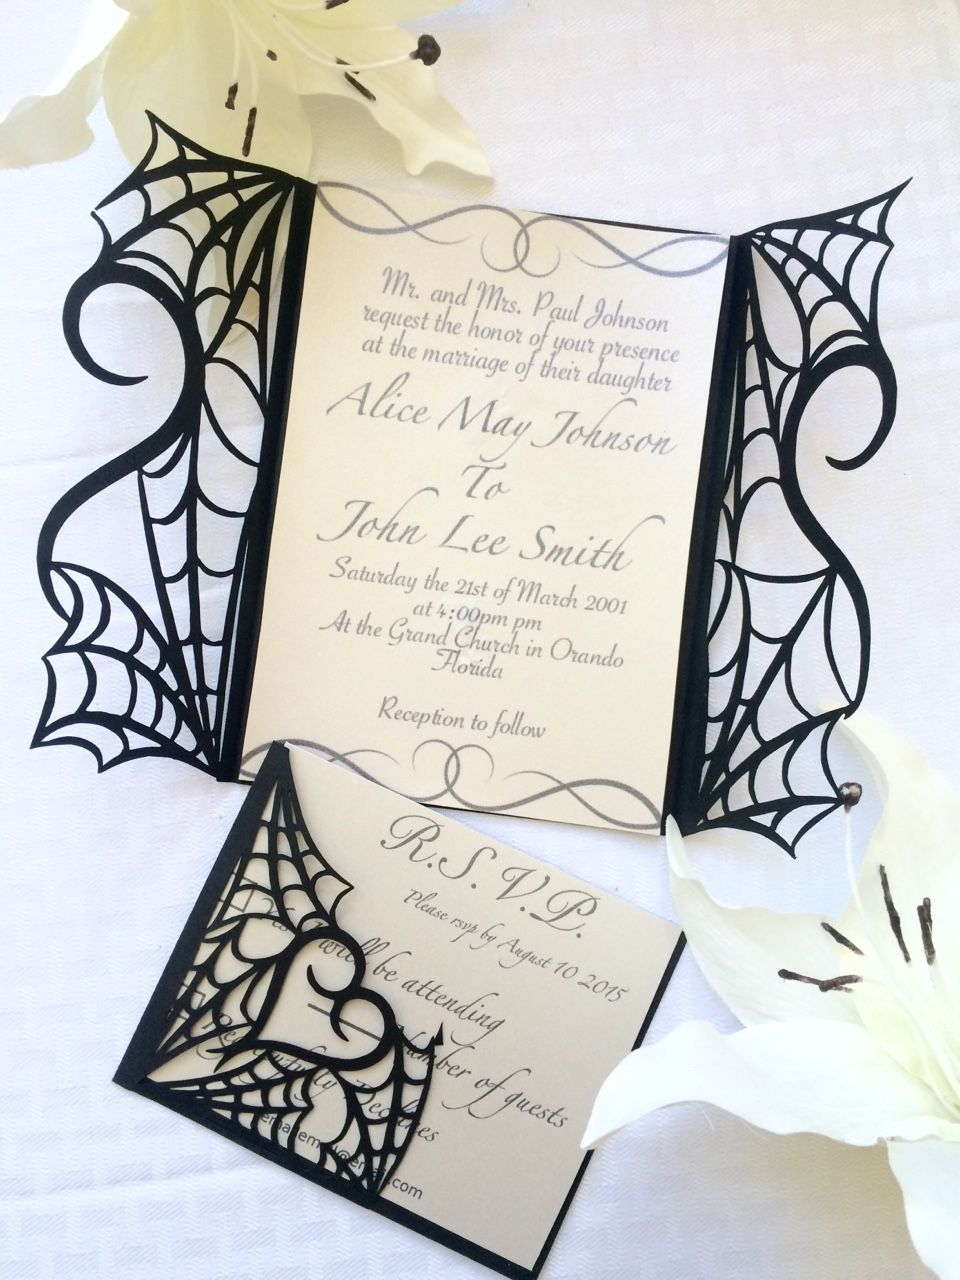 Good Gothic Halloween Wedding Party Invitation Set On Etsy   Would Make Great  Invites For Spiderman Themed Wedding Too | Geek Chic: Weddings | Pinterest  | Gothic ... Part 27